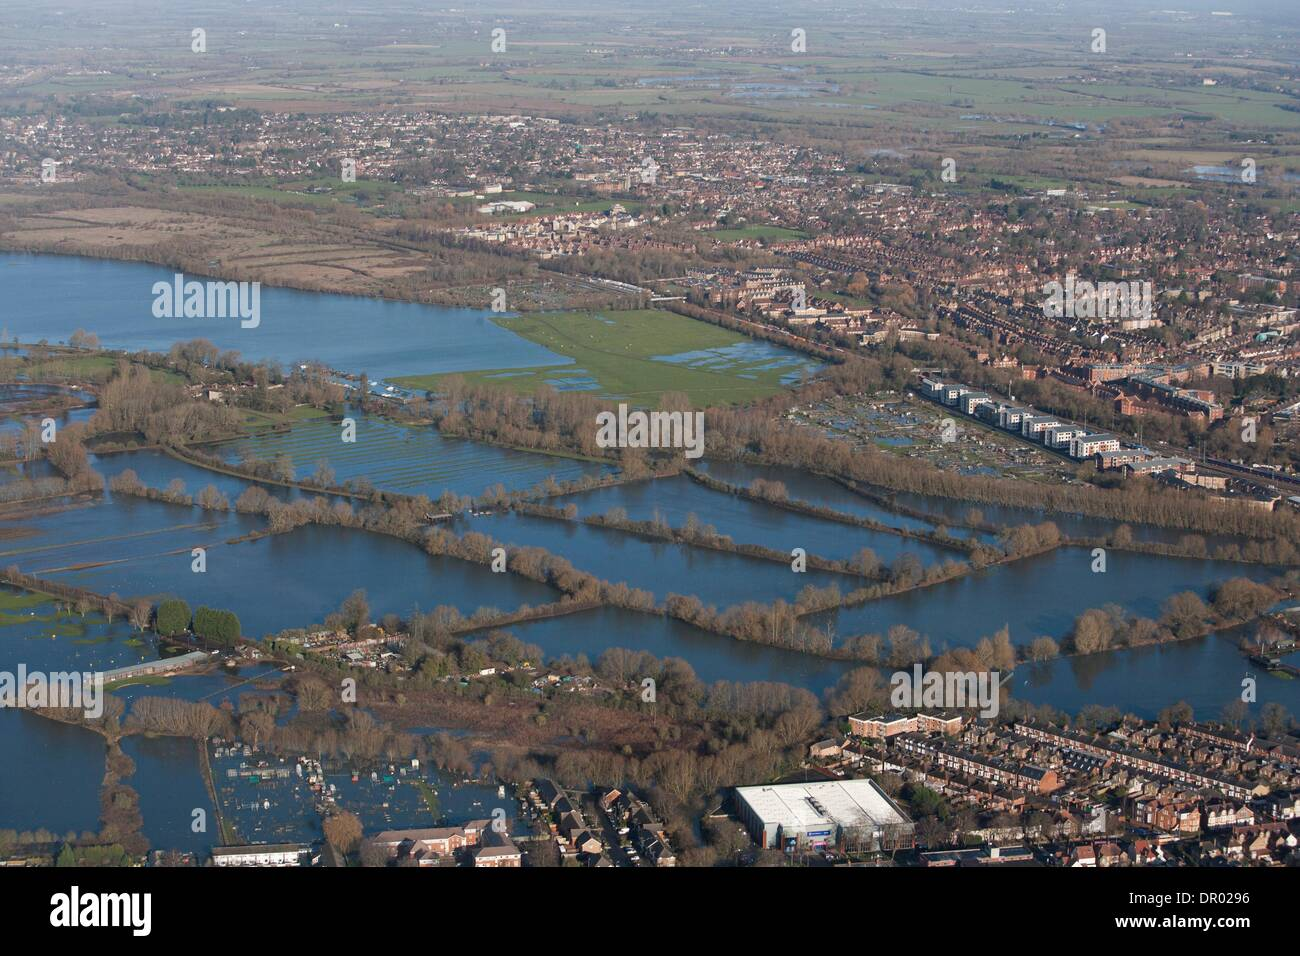 Oxford, UK. 14th January 2014. The  Thames, Oxford in  flood .  View North West over the Southern edge of Portmeadow   The  controversial Roger DudmanWay ( white) buildings  can be seen centre right bordering Portmeadow, hard up against the flooded allotments. Credit:  adrian arbib/Alamy Live News - Stock Image